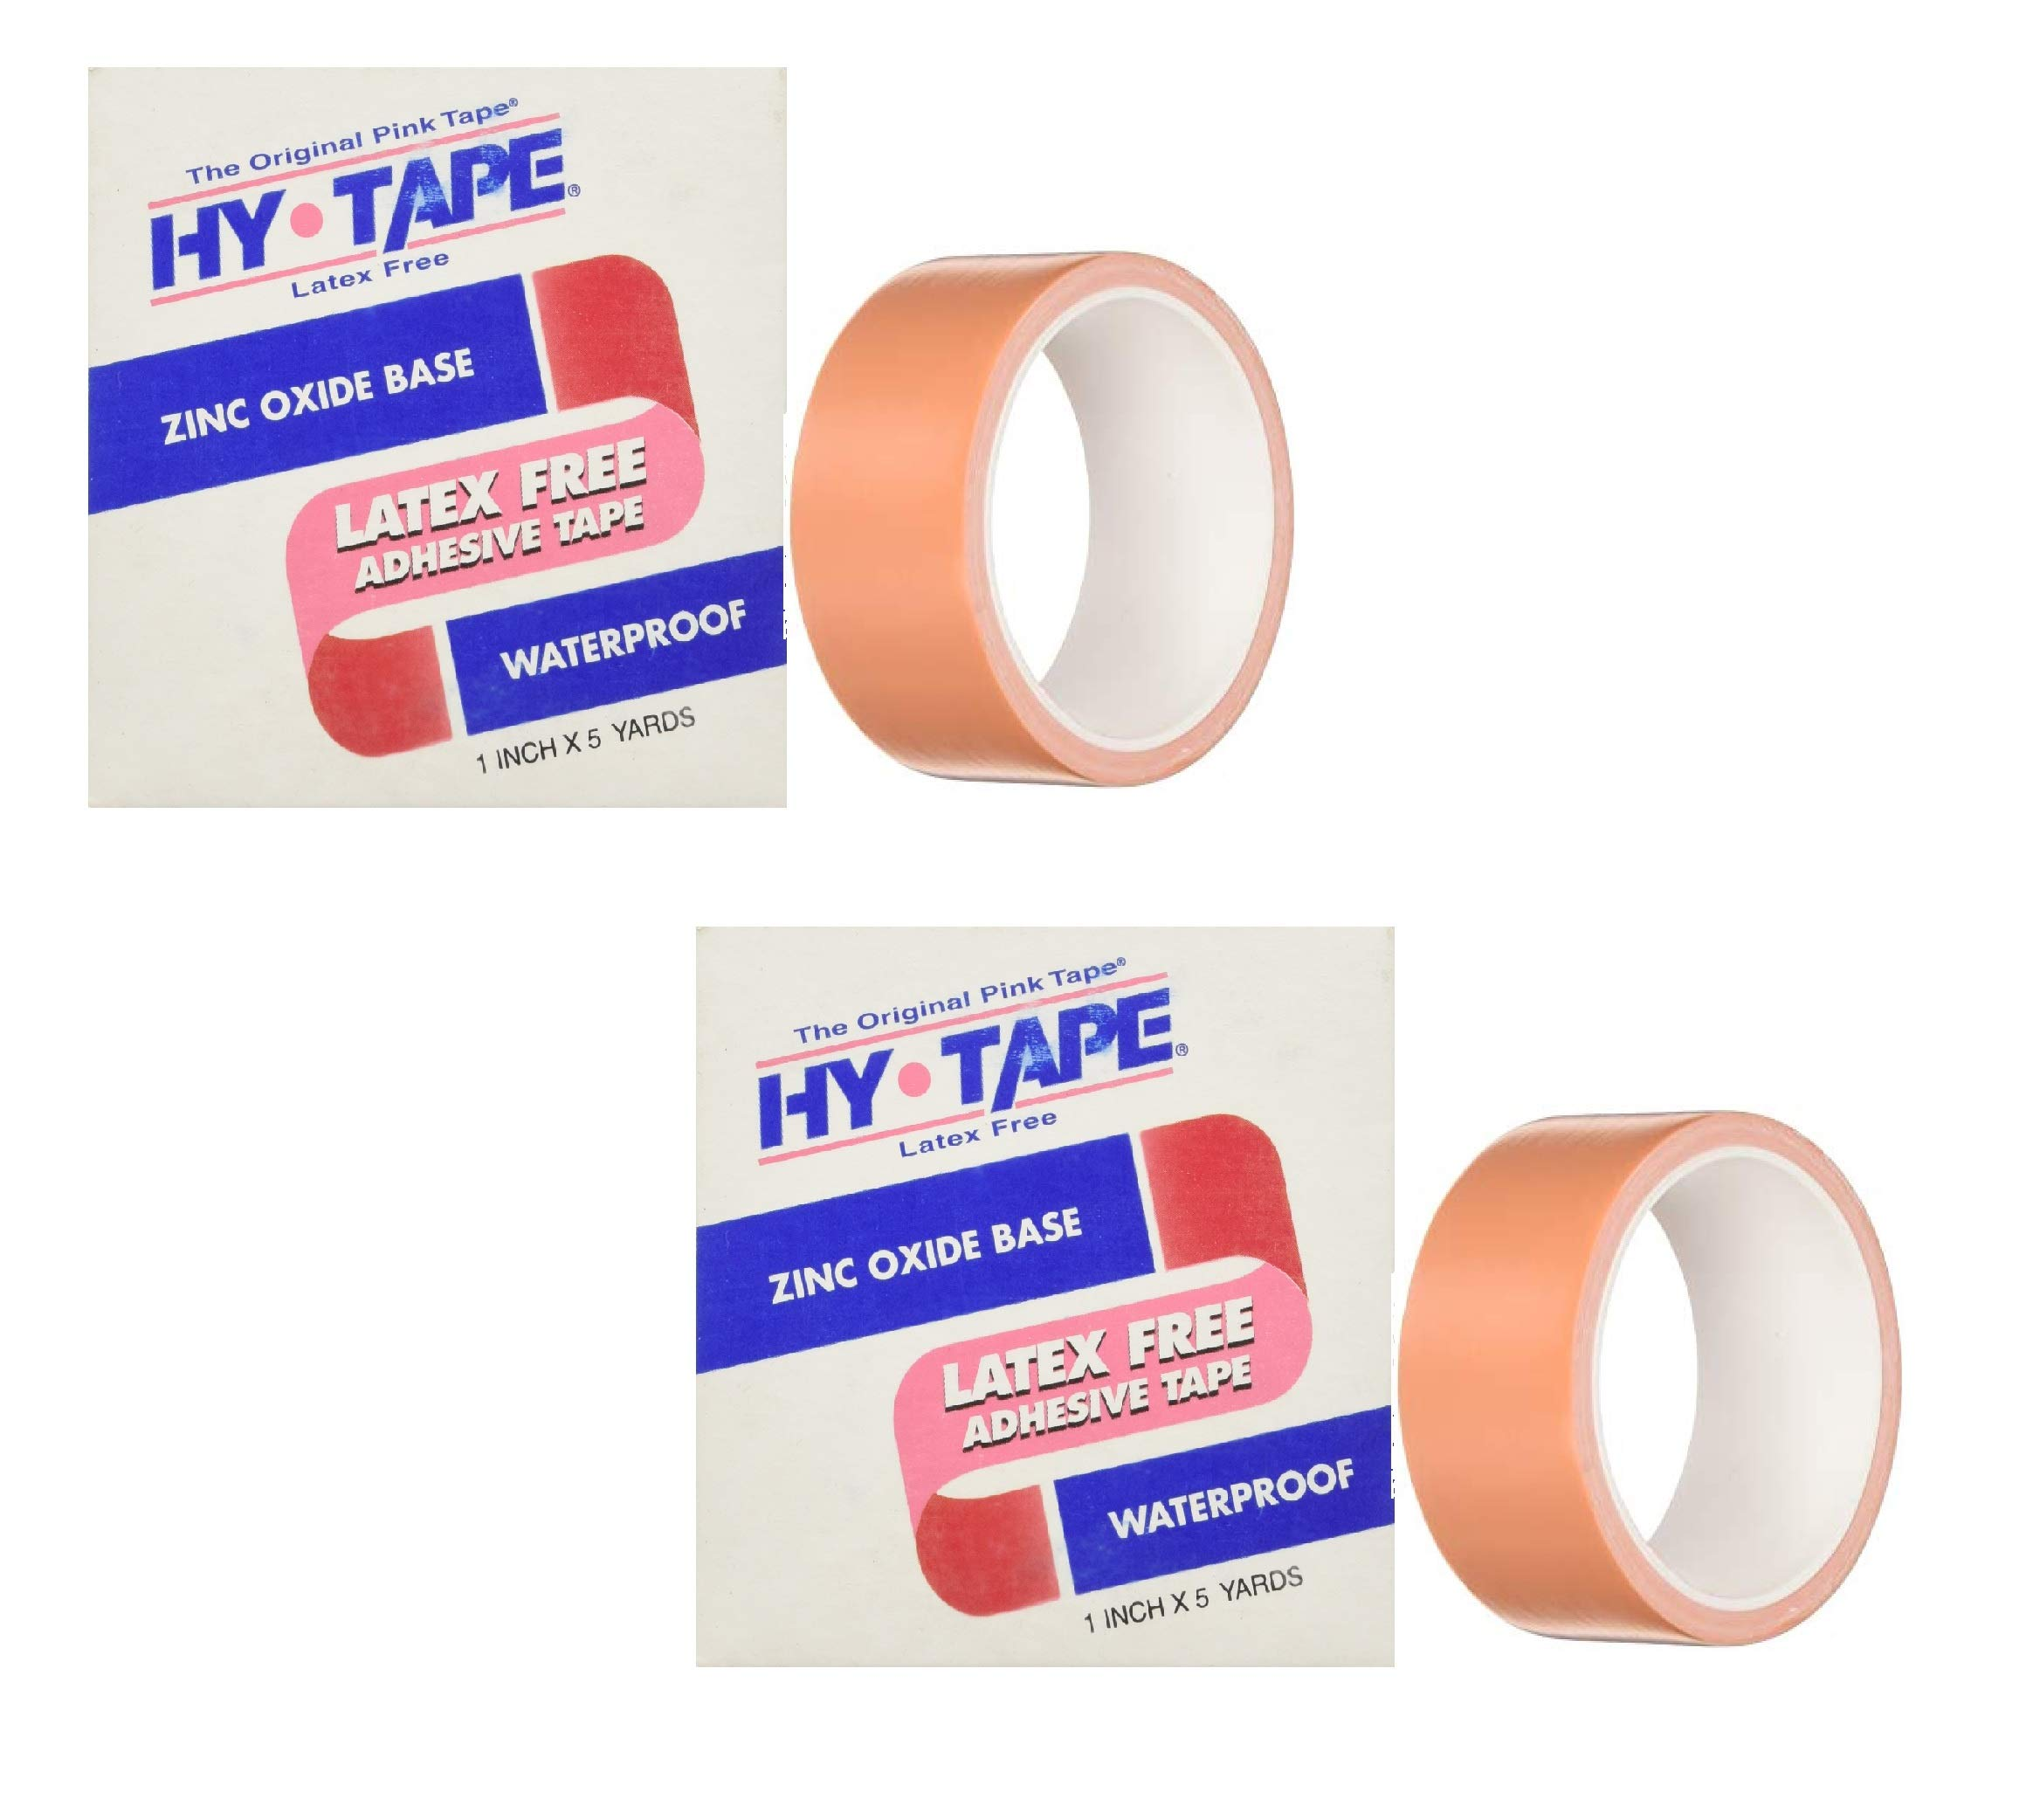 Hy-Tape Pink Tape, 1.5'' x 5 Yards, 15LF - Pink Medical Waterproof Surgical Tape (2 Pack (2 Count))